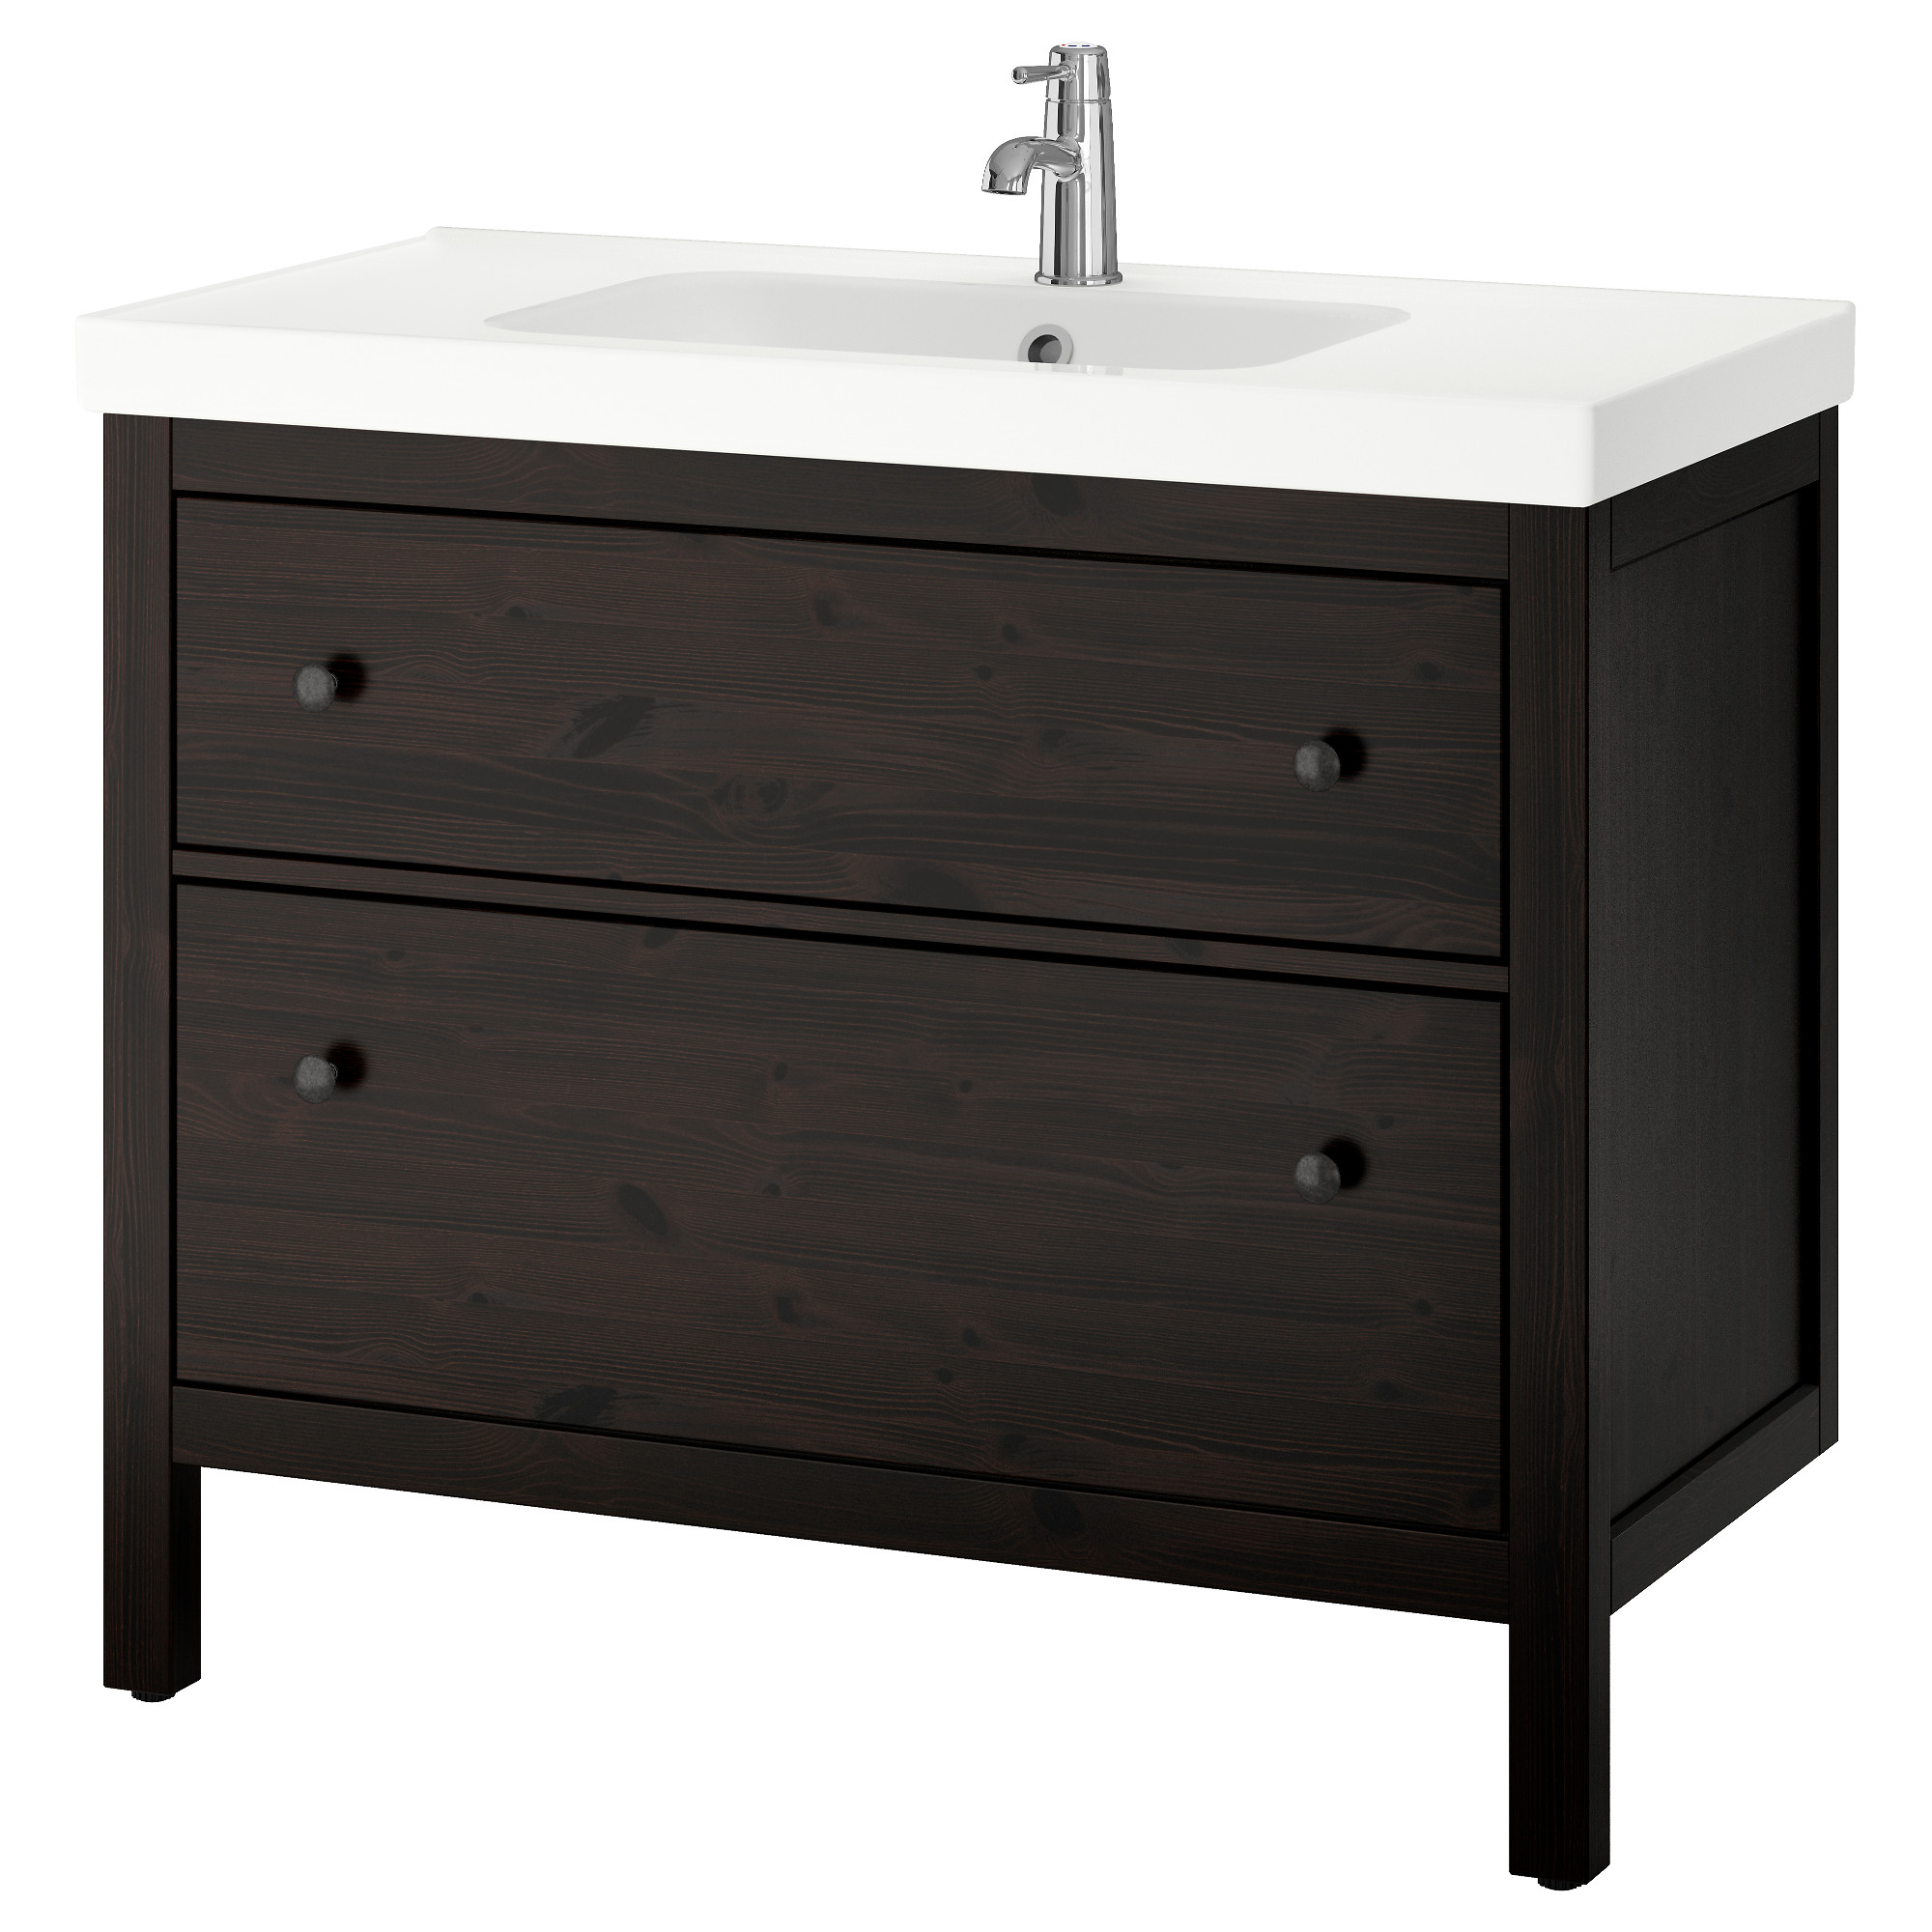 HEMNES   ODENSVIK sink cabinet with 2 drawers  black brown stain Width  40. Bathroom Sink Cabinets   IKEA